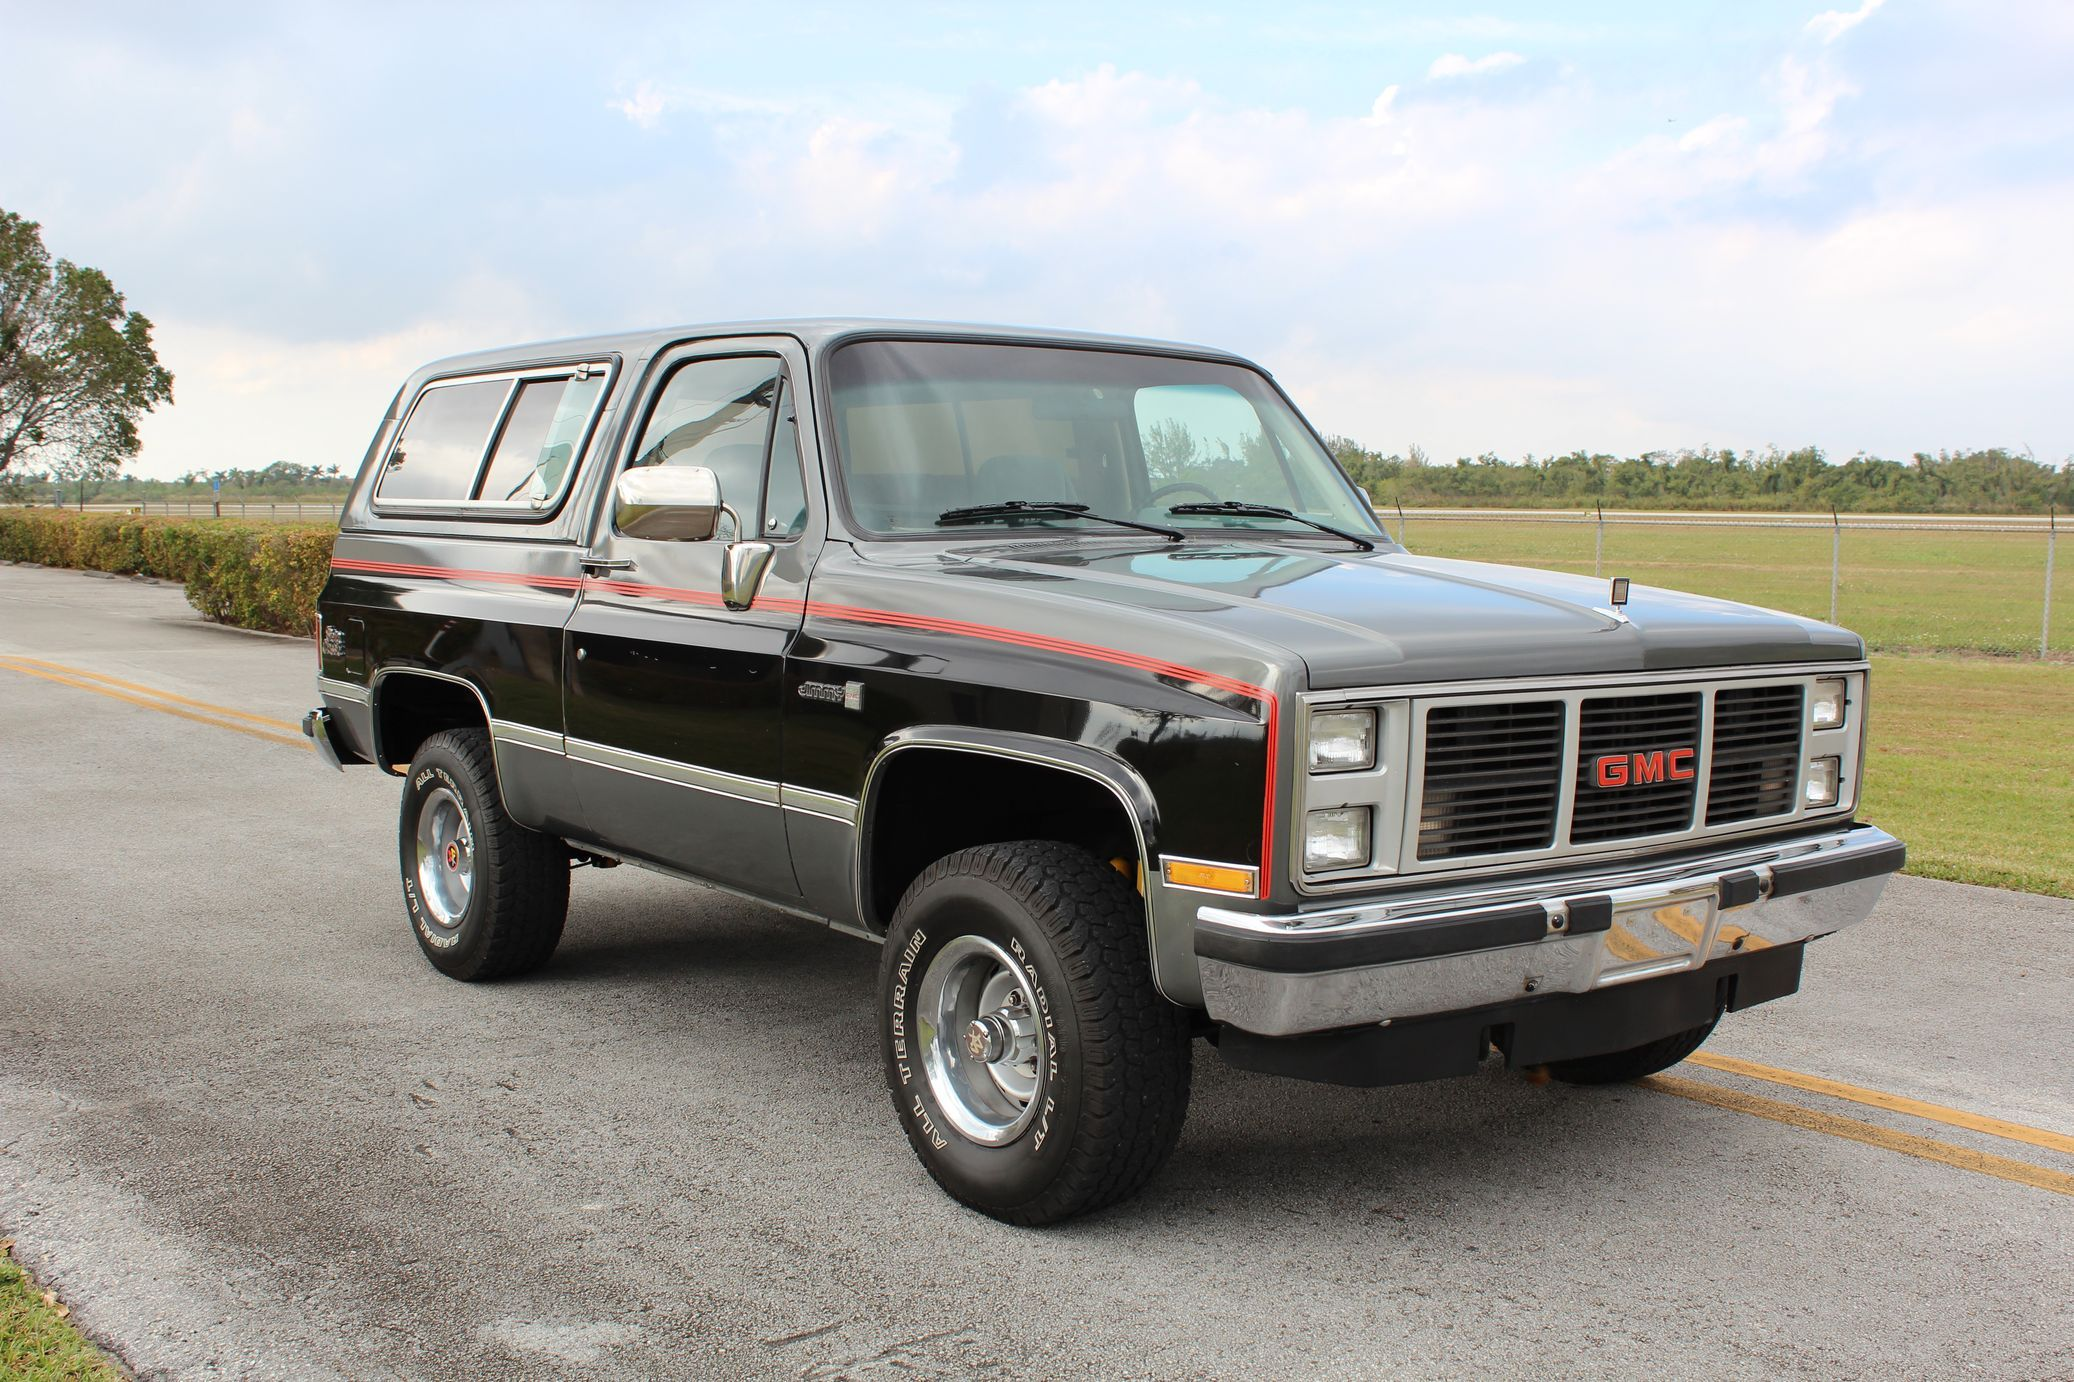 1987 Gmc Jimmy 4 4 In 2020 Gmc Classic Chevy Trucks Vintage